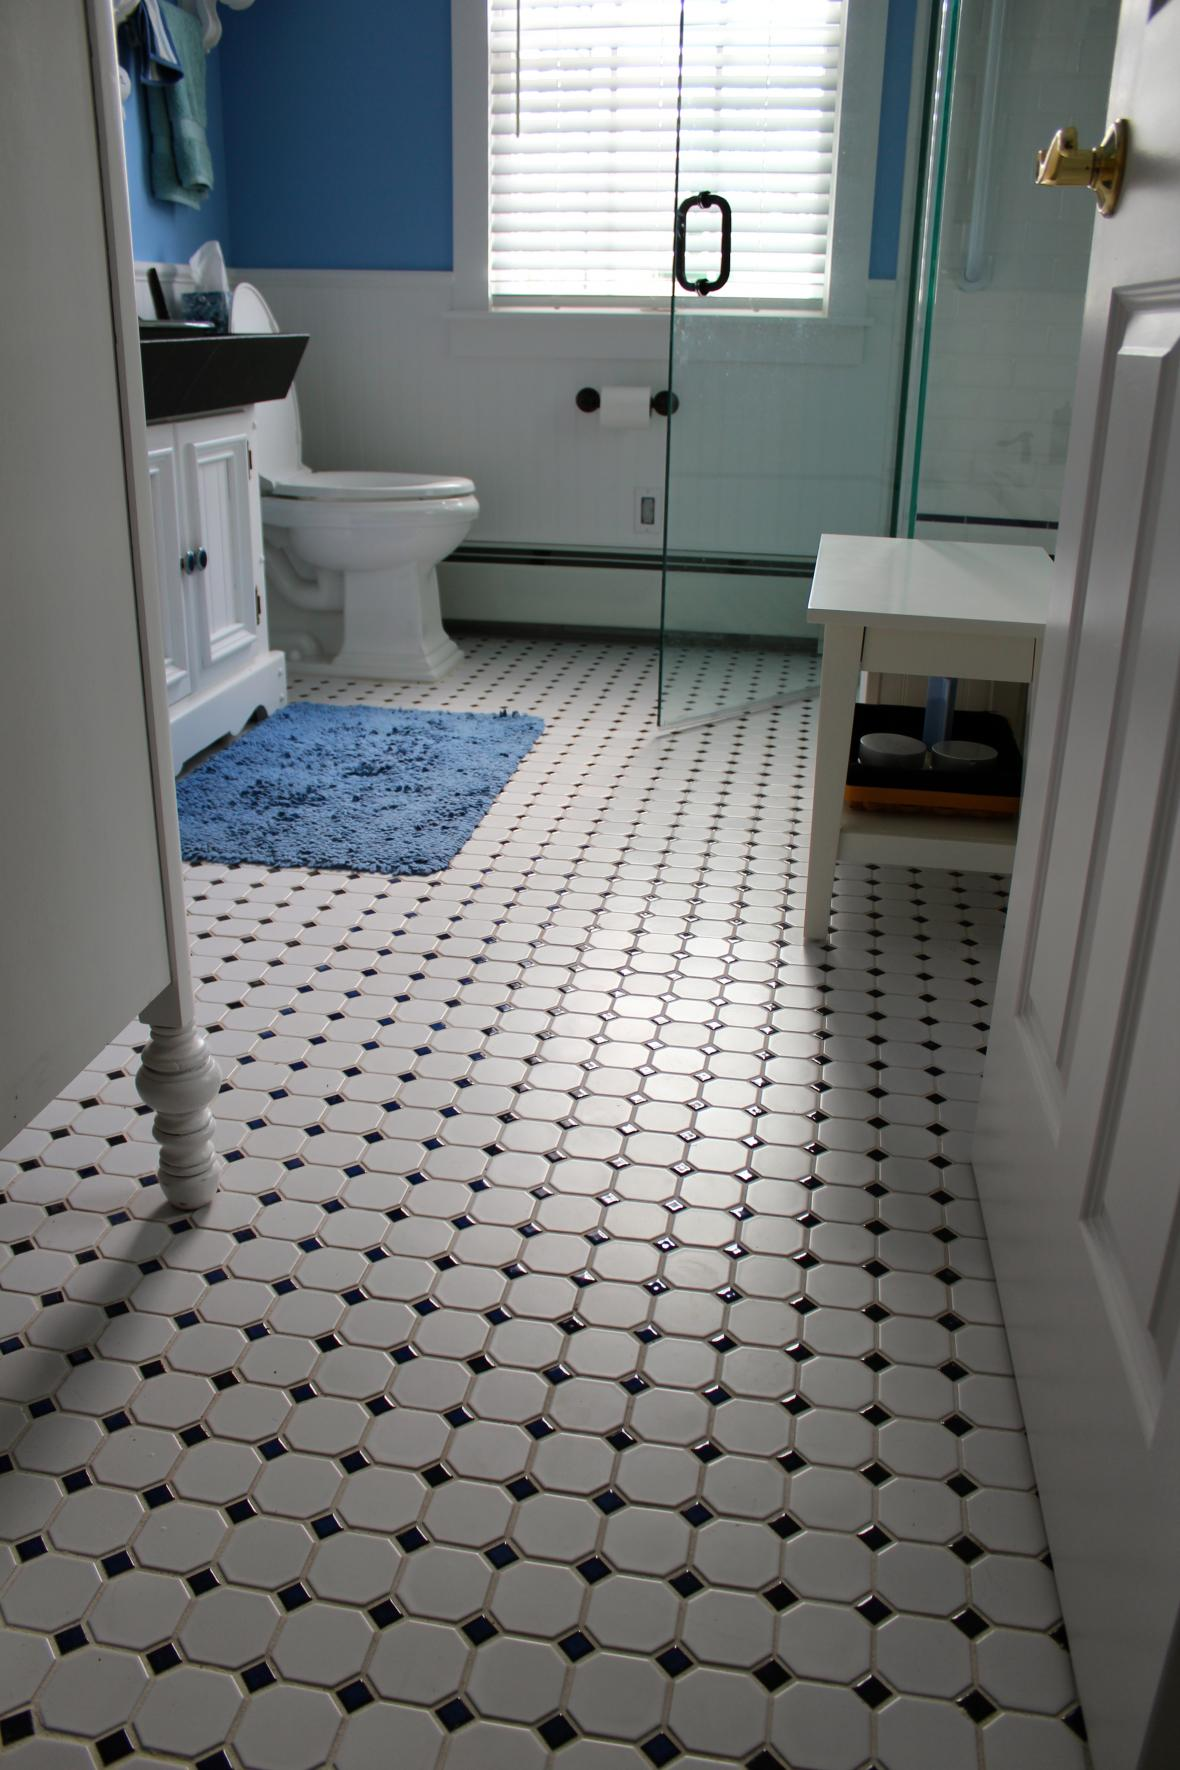 bathroom floors new jersey custom tile. Black Bedroom Furniture Sets. Home Design Ideas